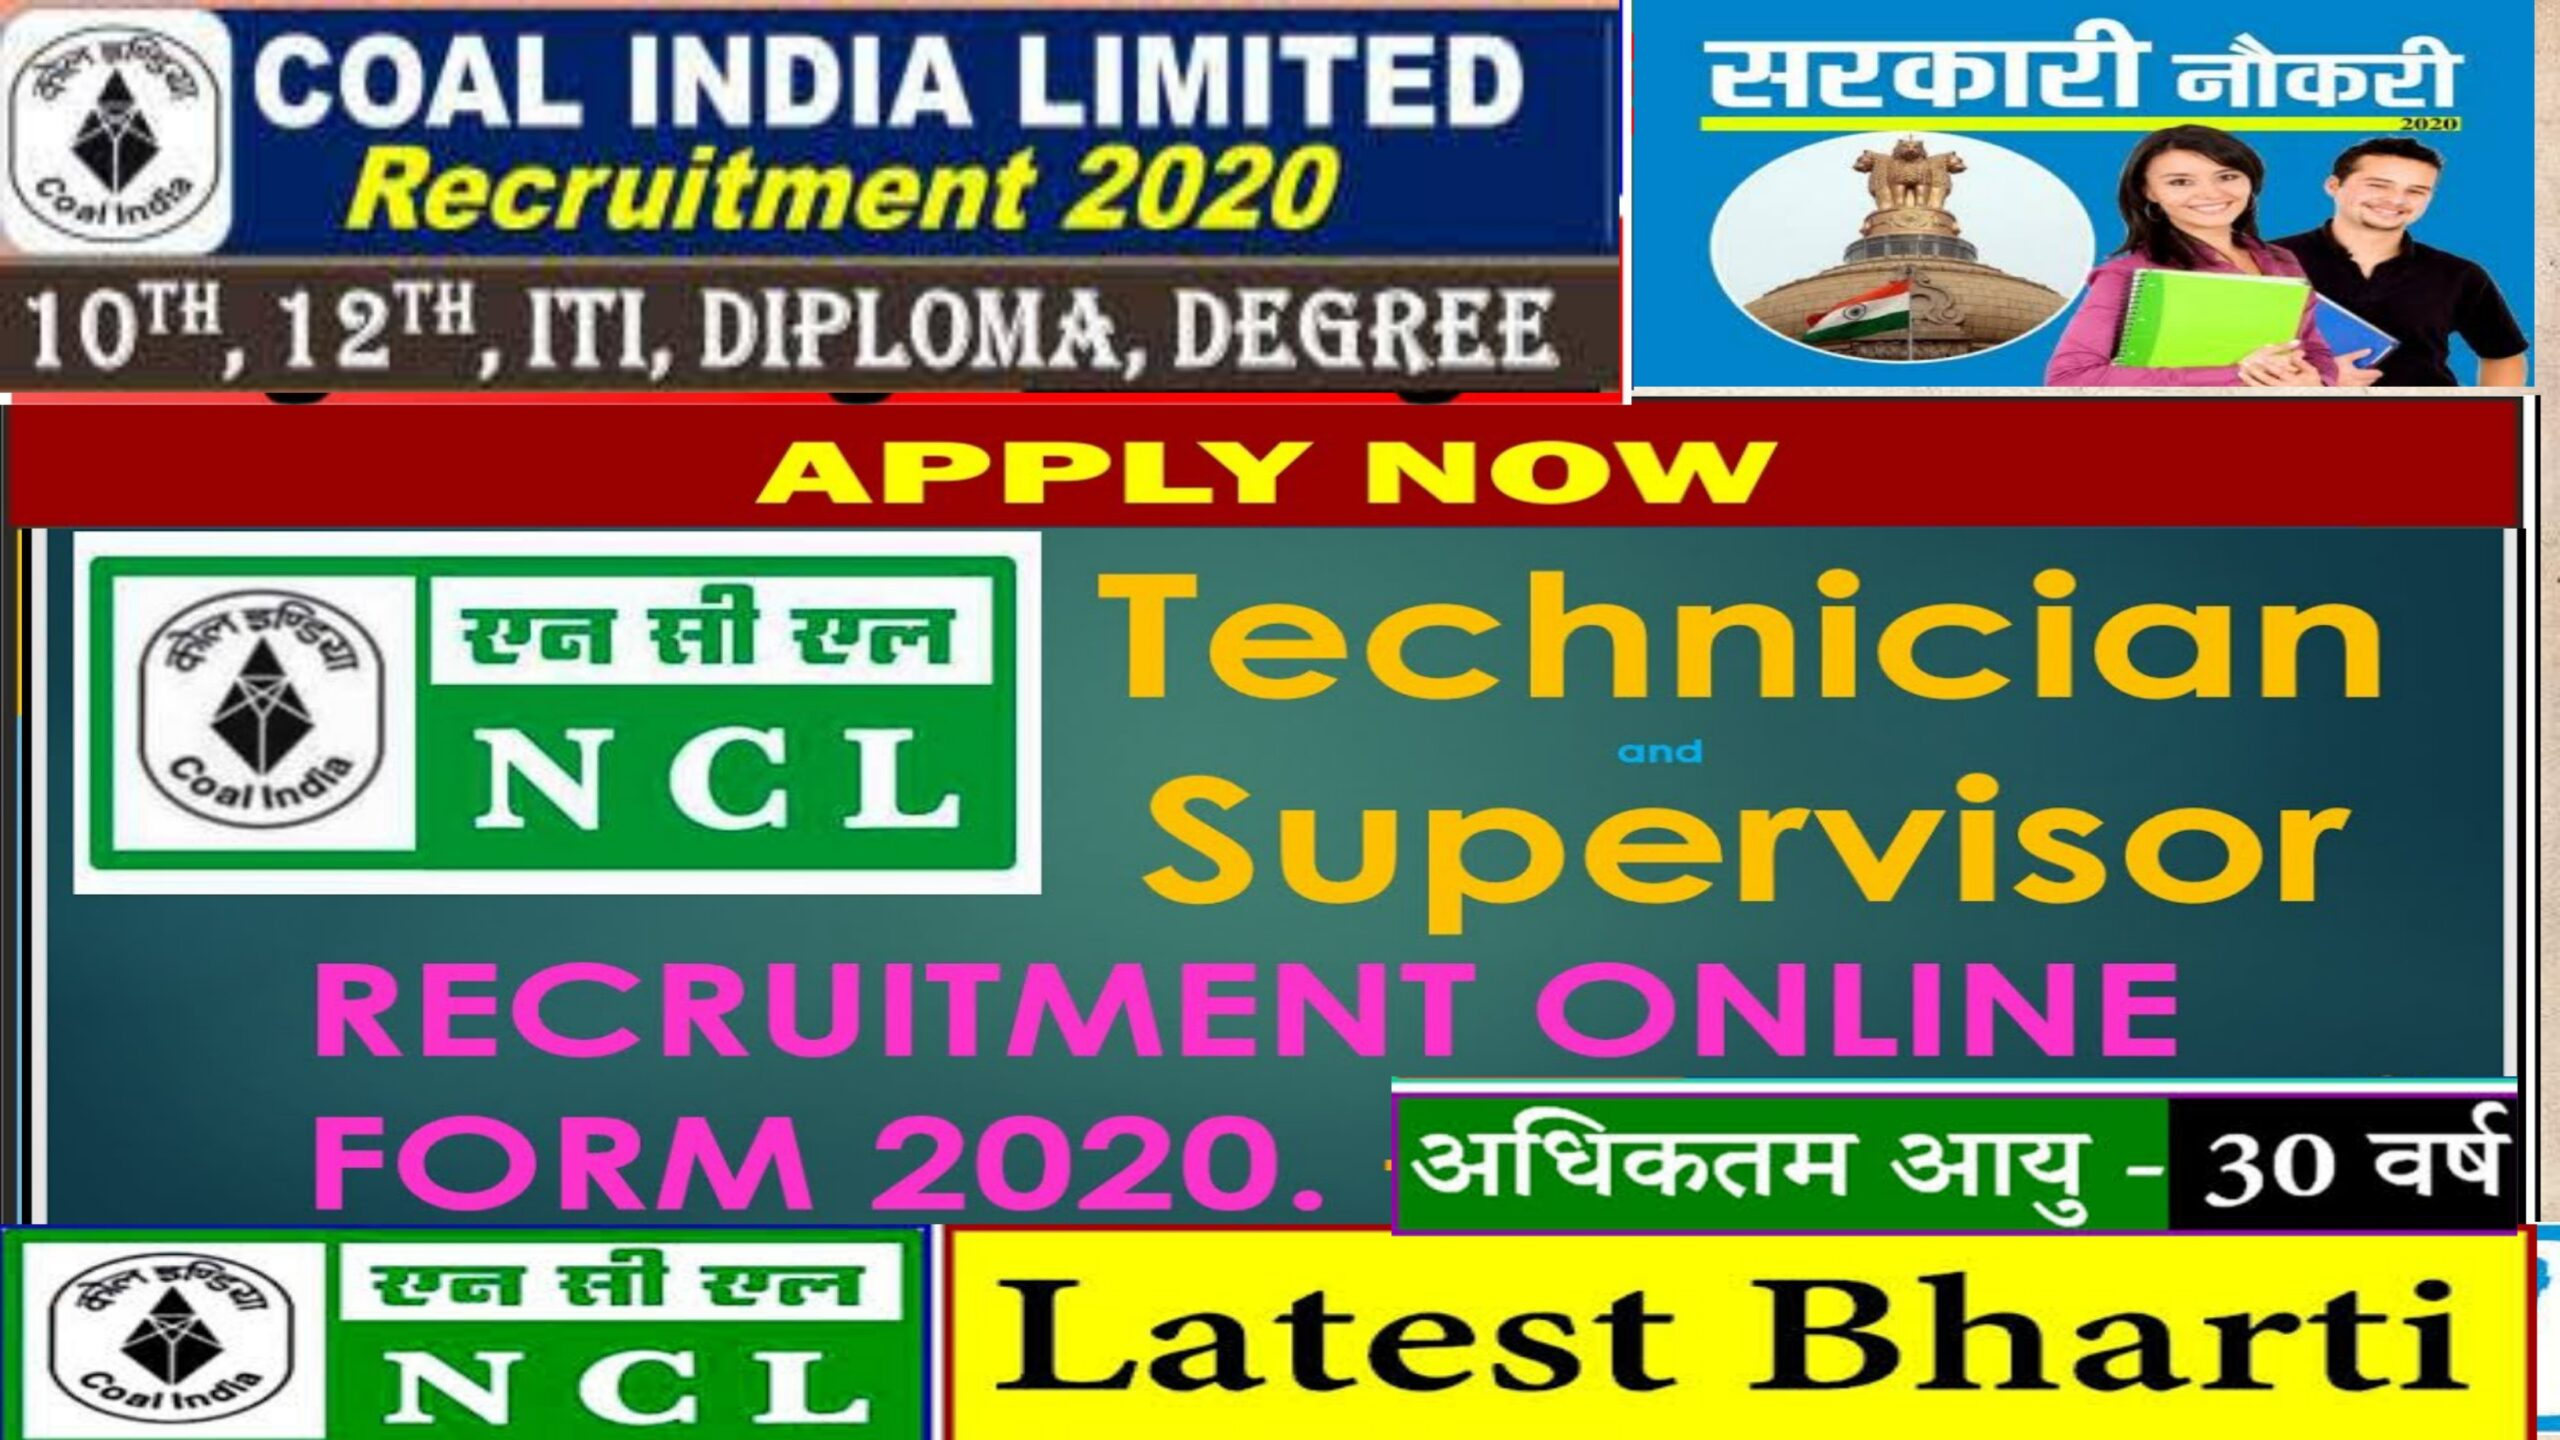 NCL Technician and Supervisor Online Form 2020